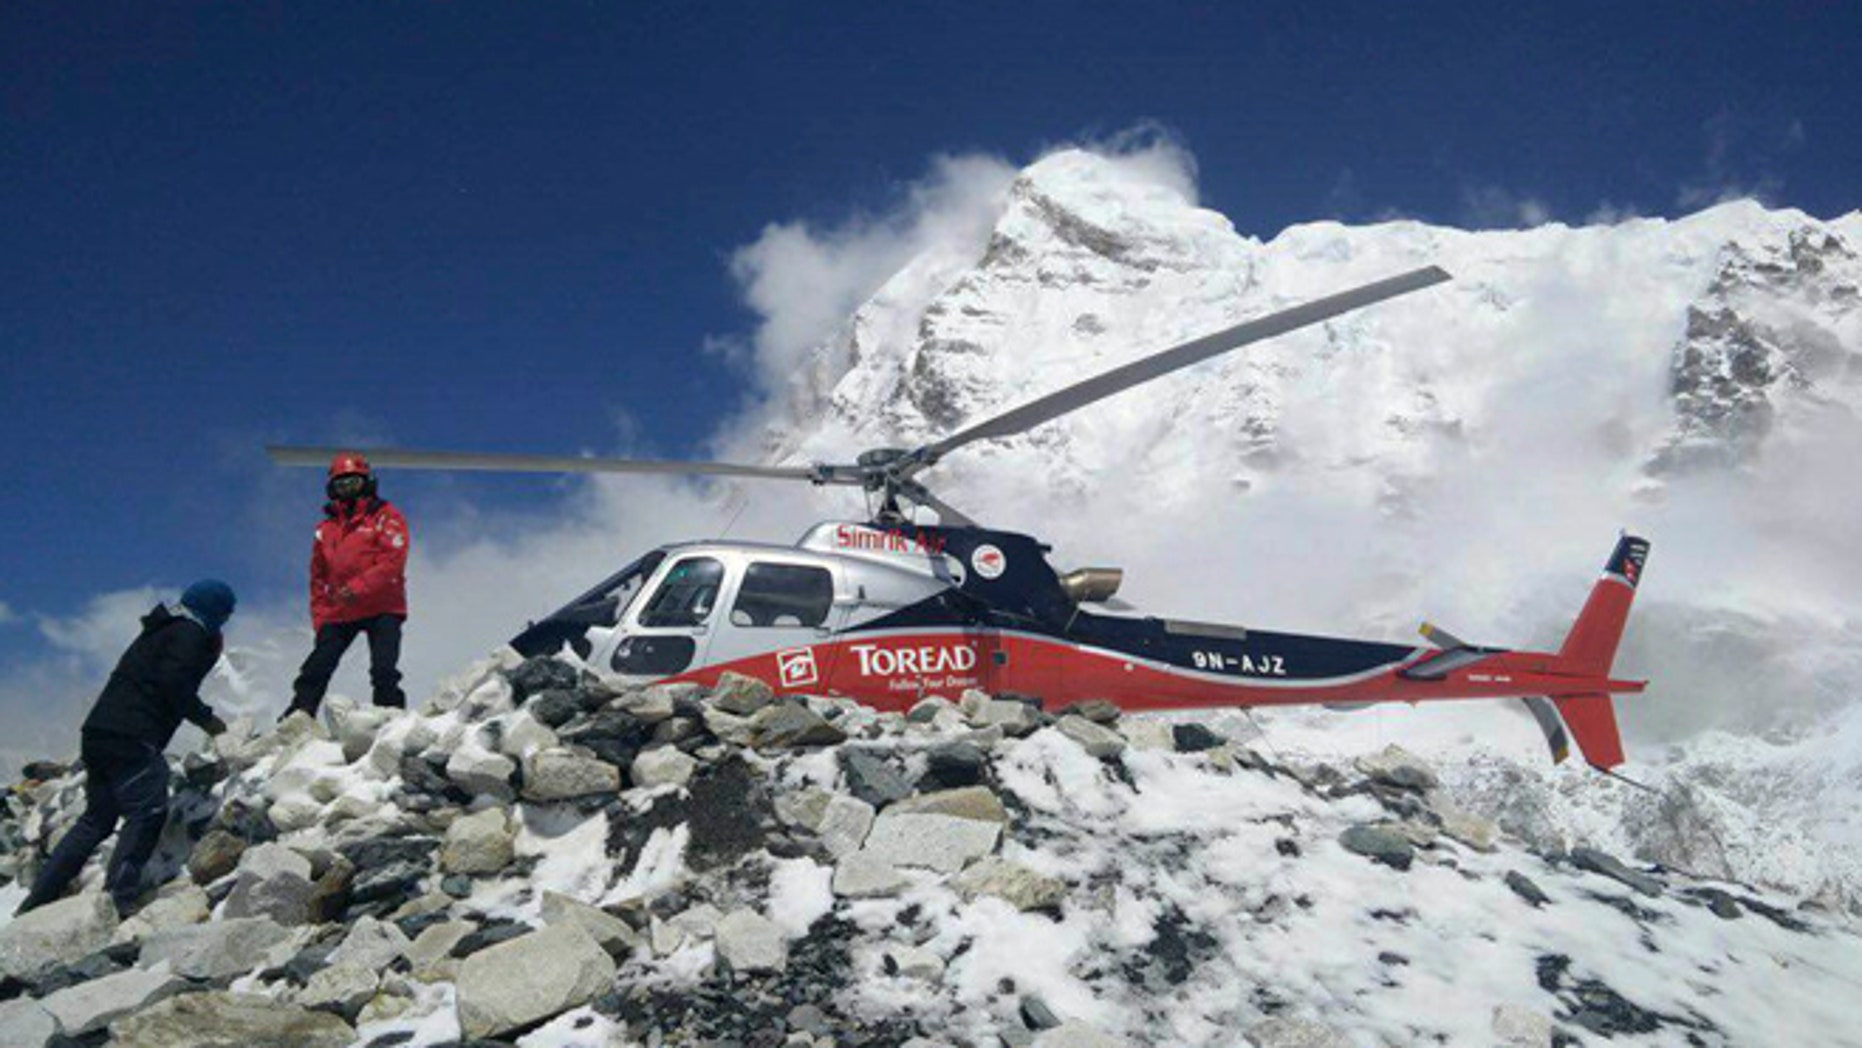 A helicopter prepares to rescue people from camp 1 and 2 at Everest Base Camp, Nepal. On Monday, State Department officials confirmed the death of two Americans at the base camp from a large avalanche triggered by Nepal's massive earthquake. (Azim Afif via AP)